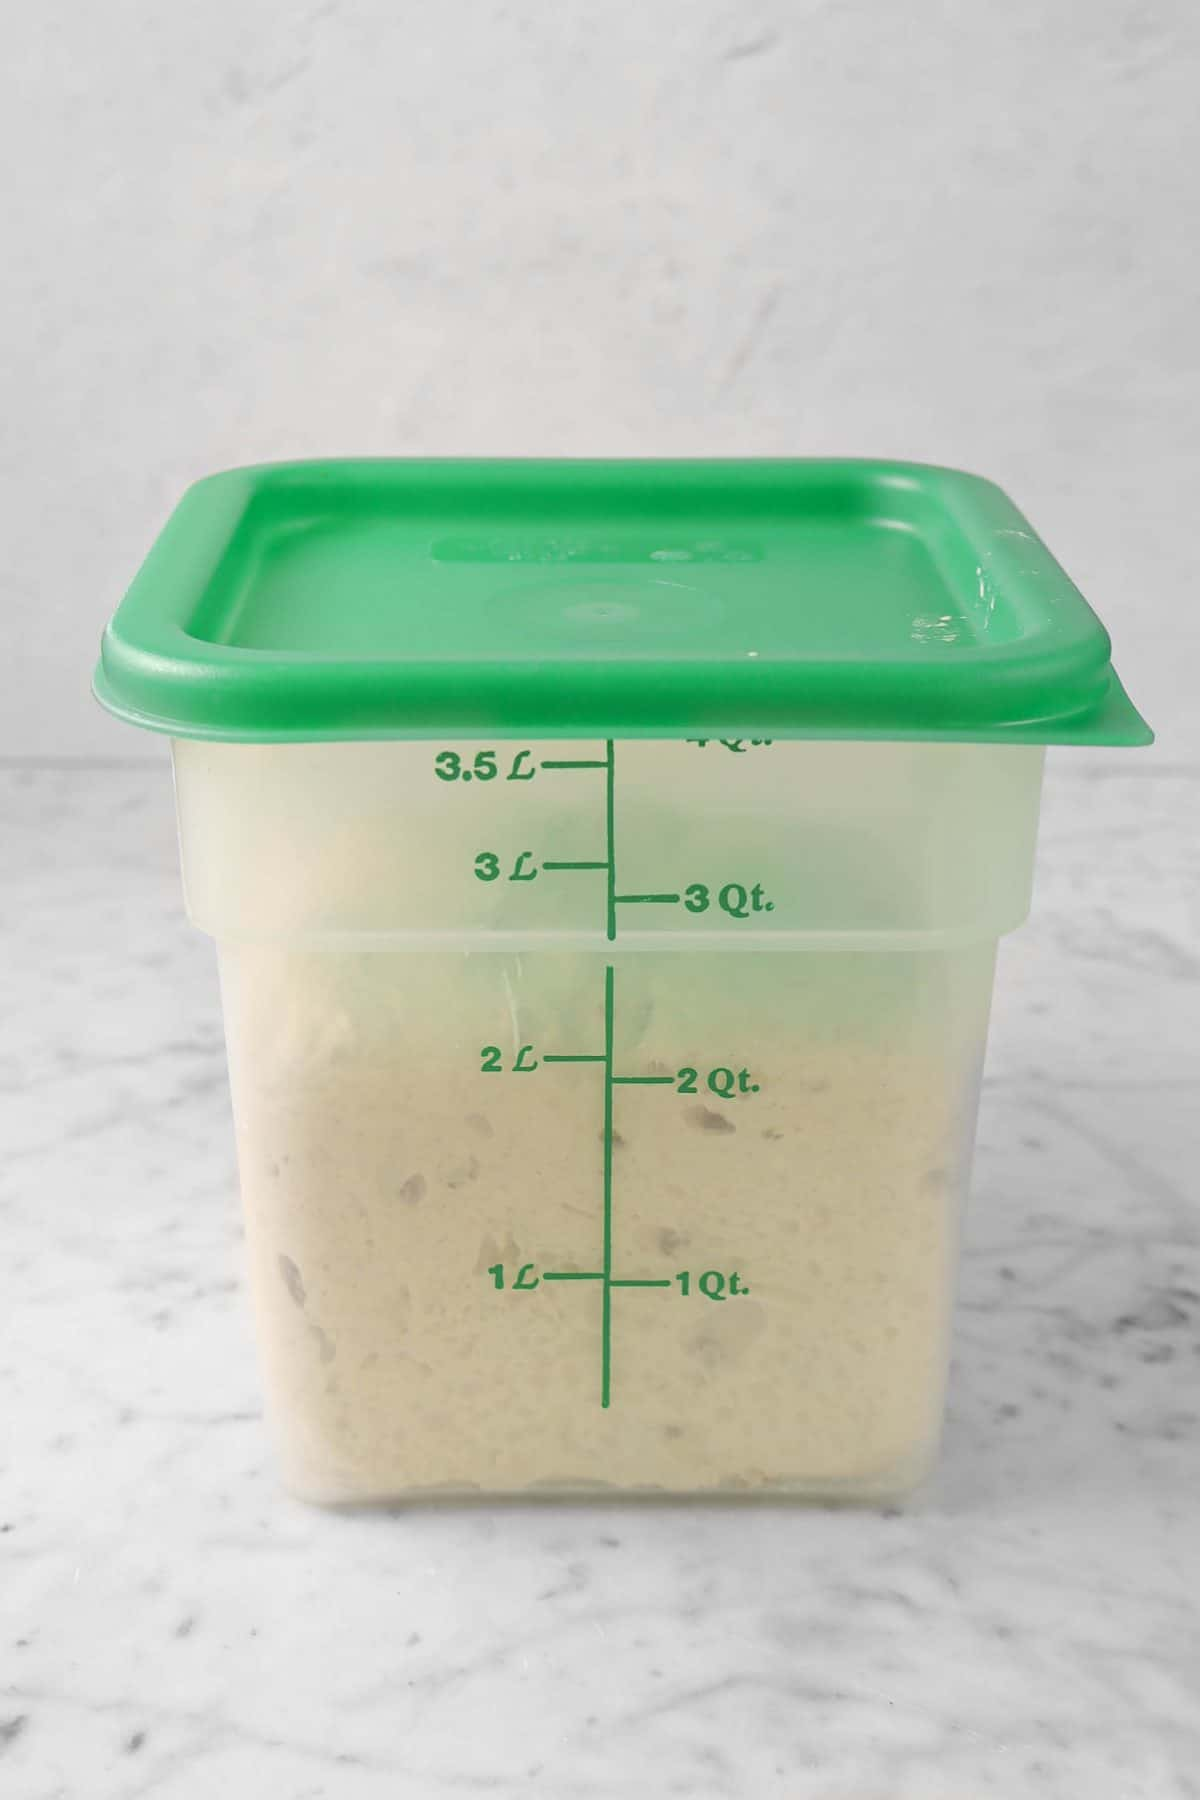 dough doubled in bulk in a green container